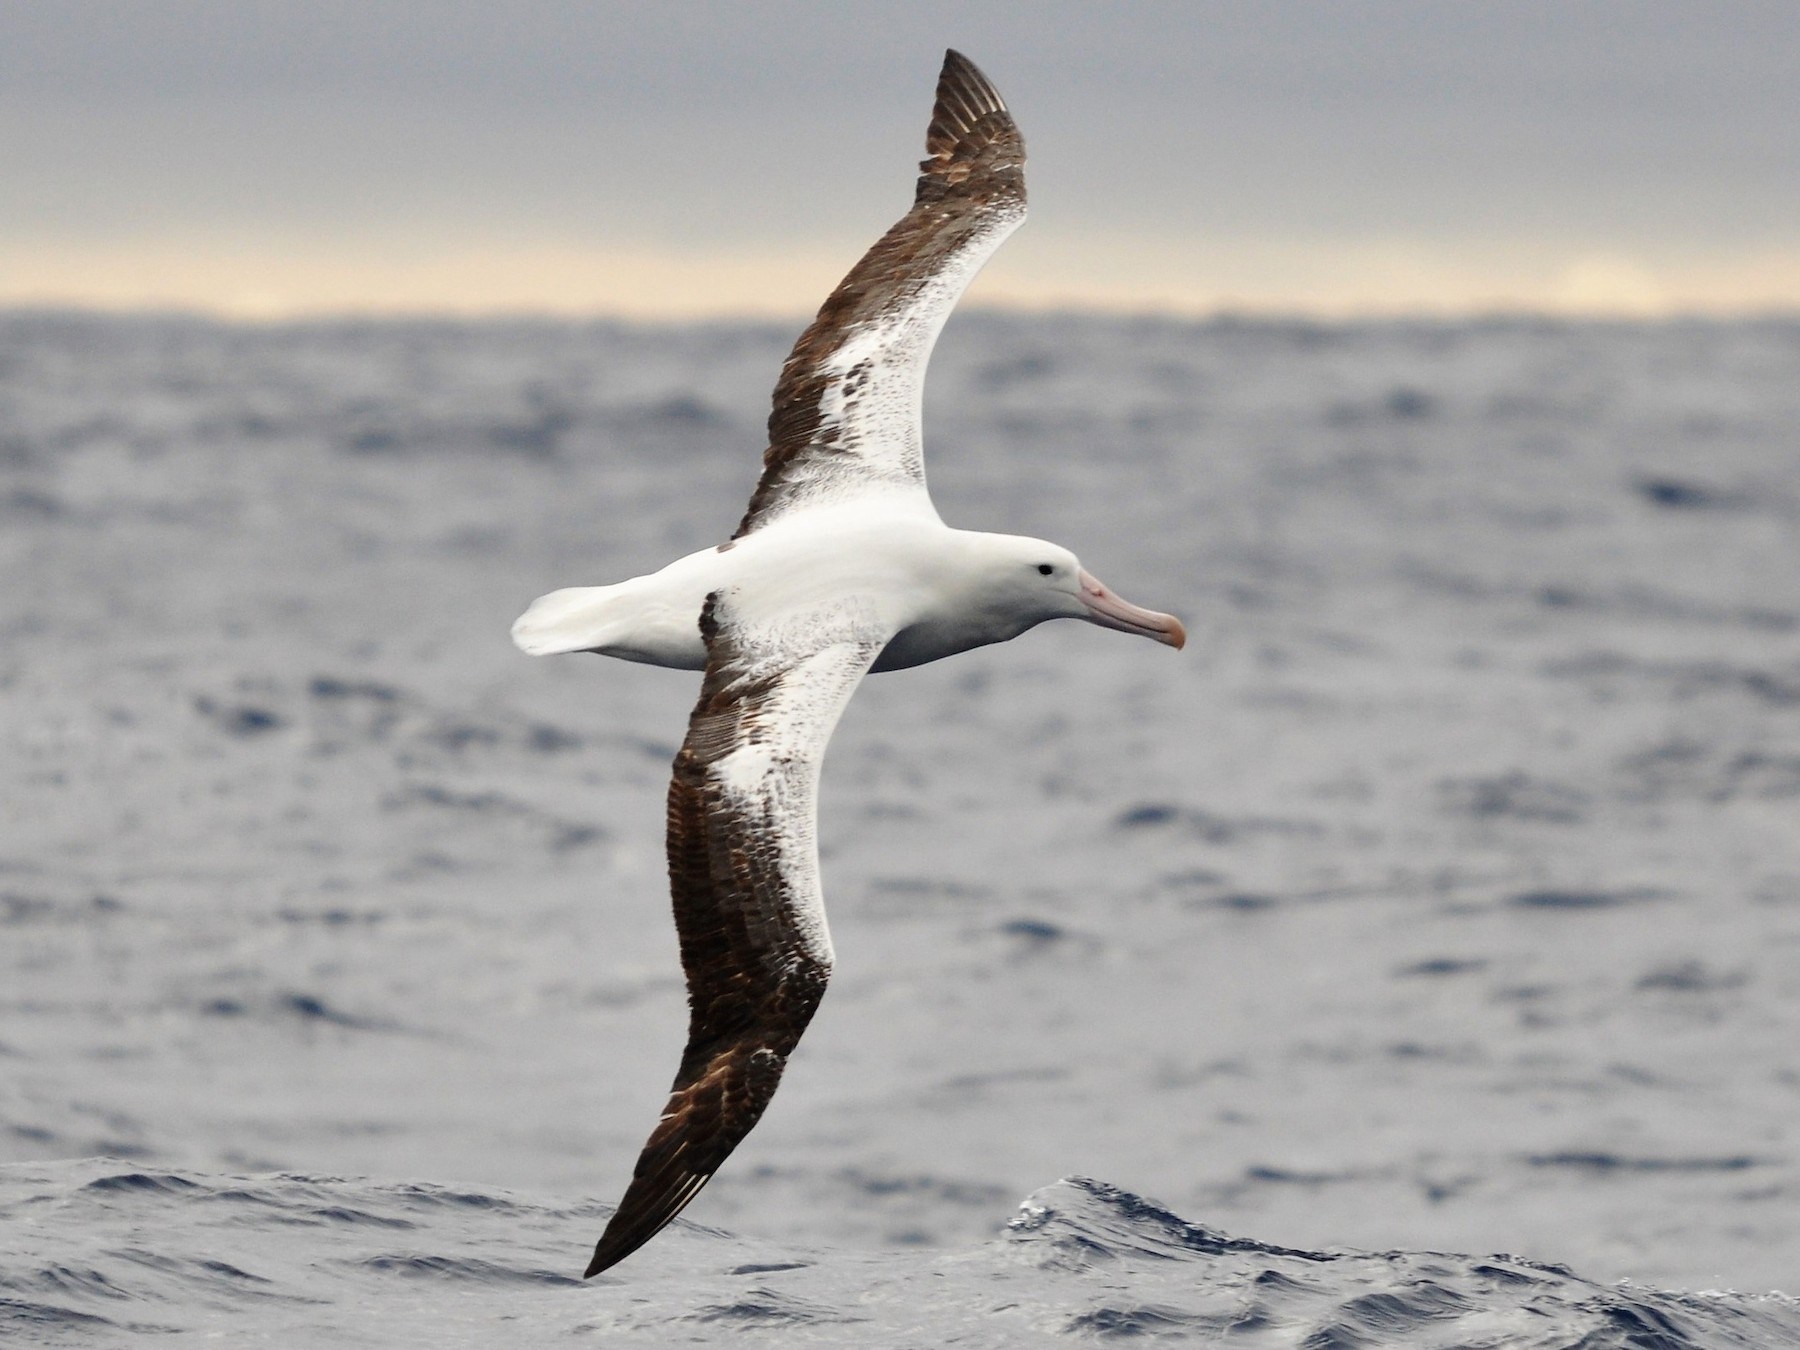 The Albatross, Sea Bird that Can go Years Without Landing